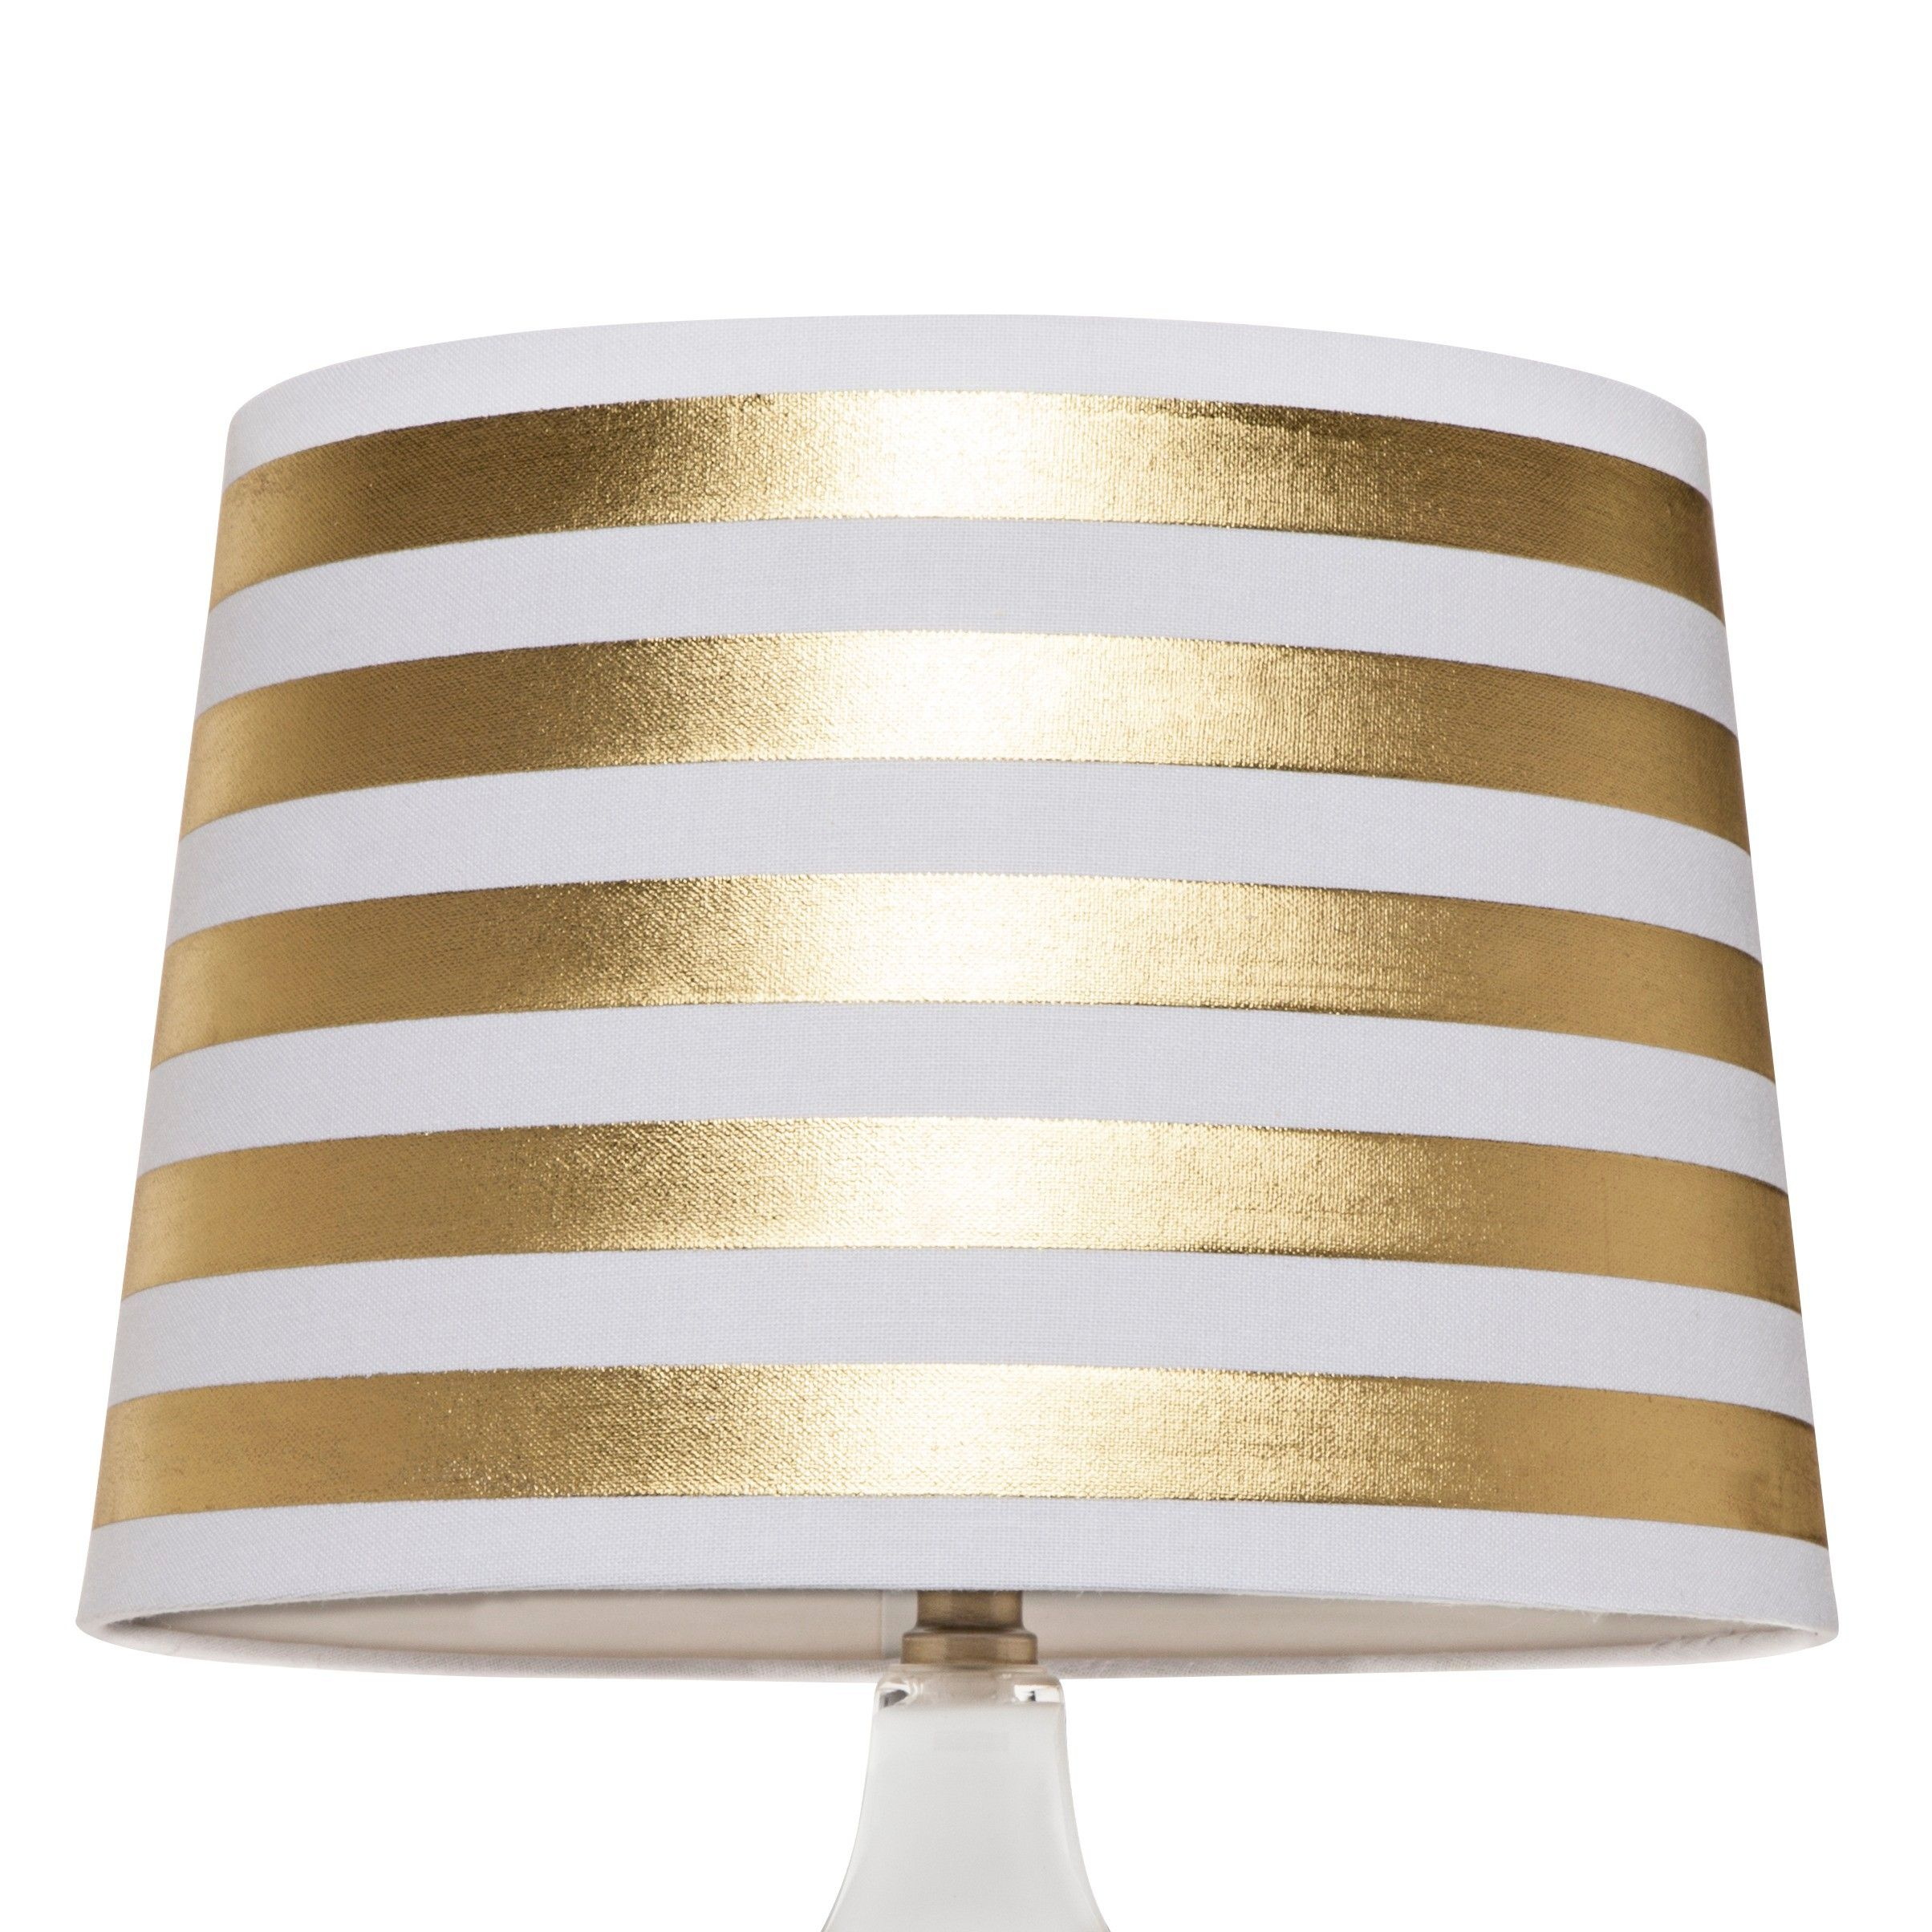 Threshold gold stripe lamp shade large target hightower threshold gold stripe lamp shade large target aloadofball Image collections